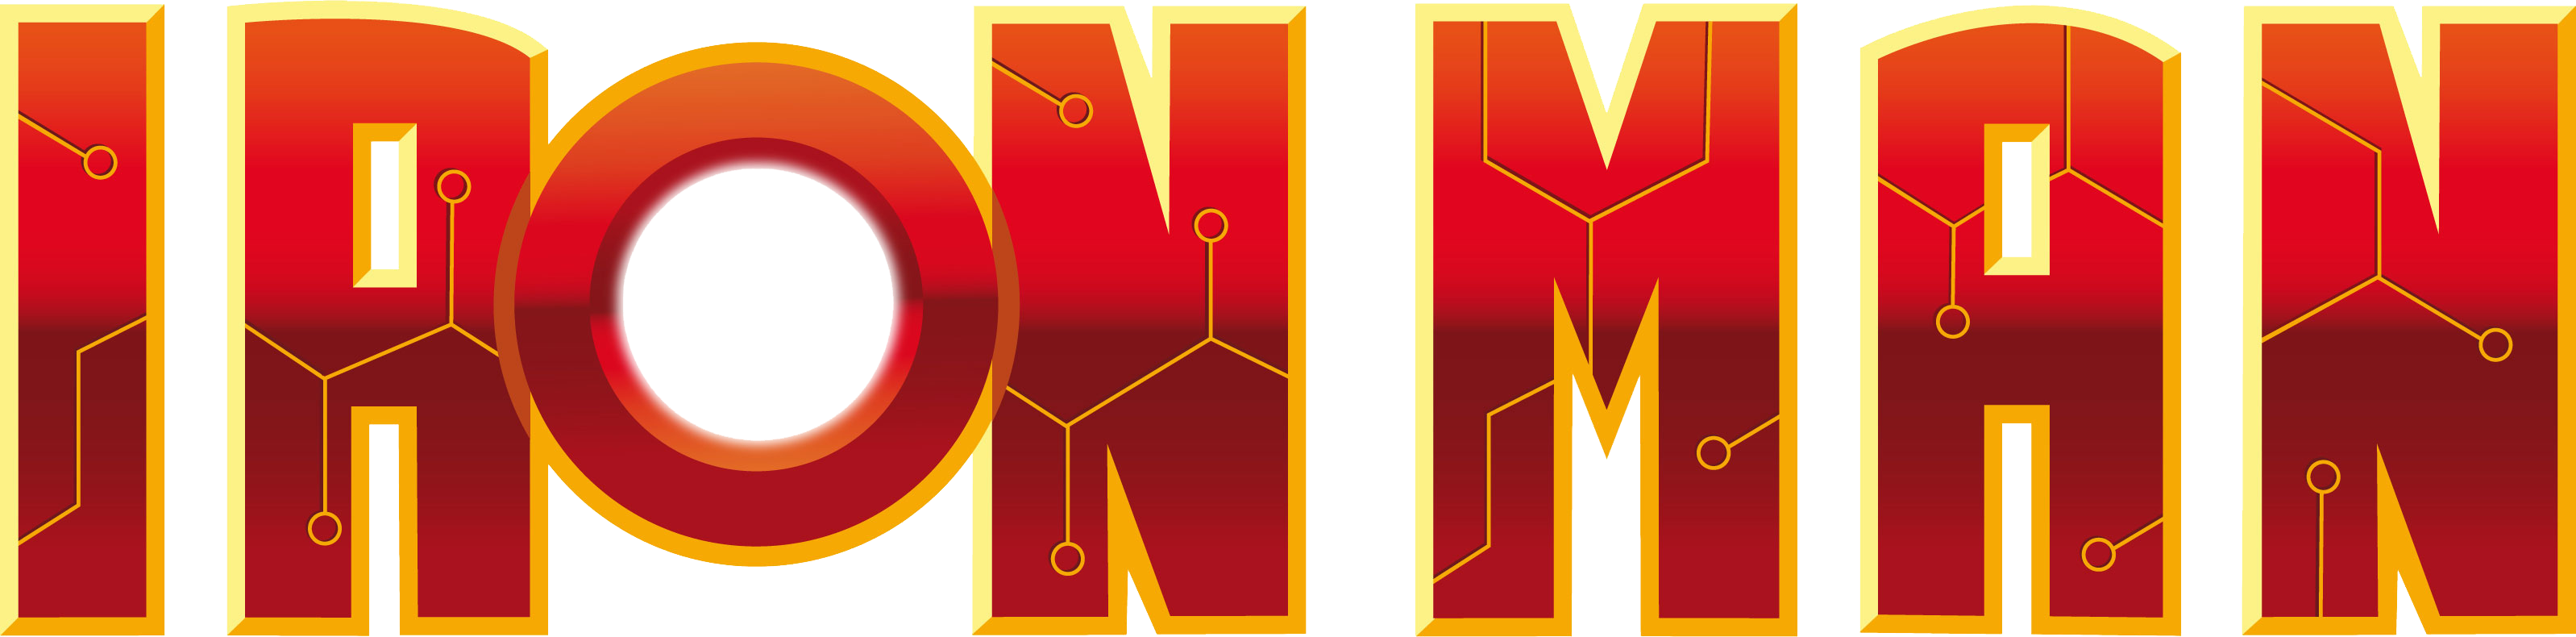 iron man logo 01